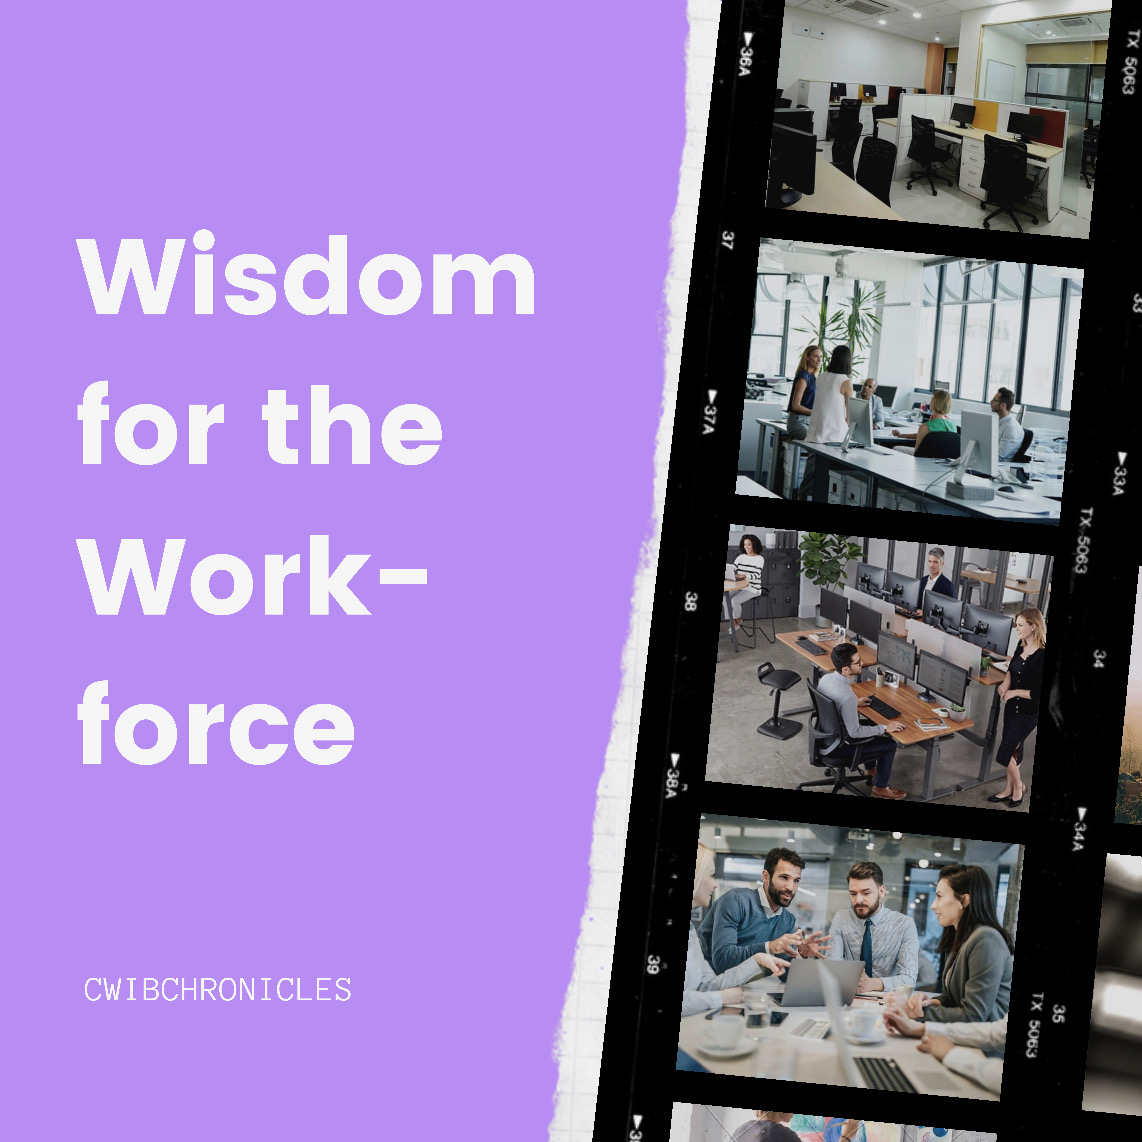 Wisdom for the Workforce